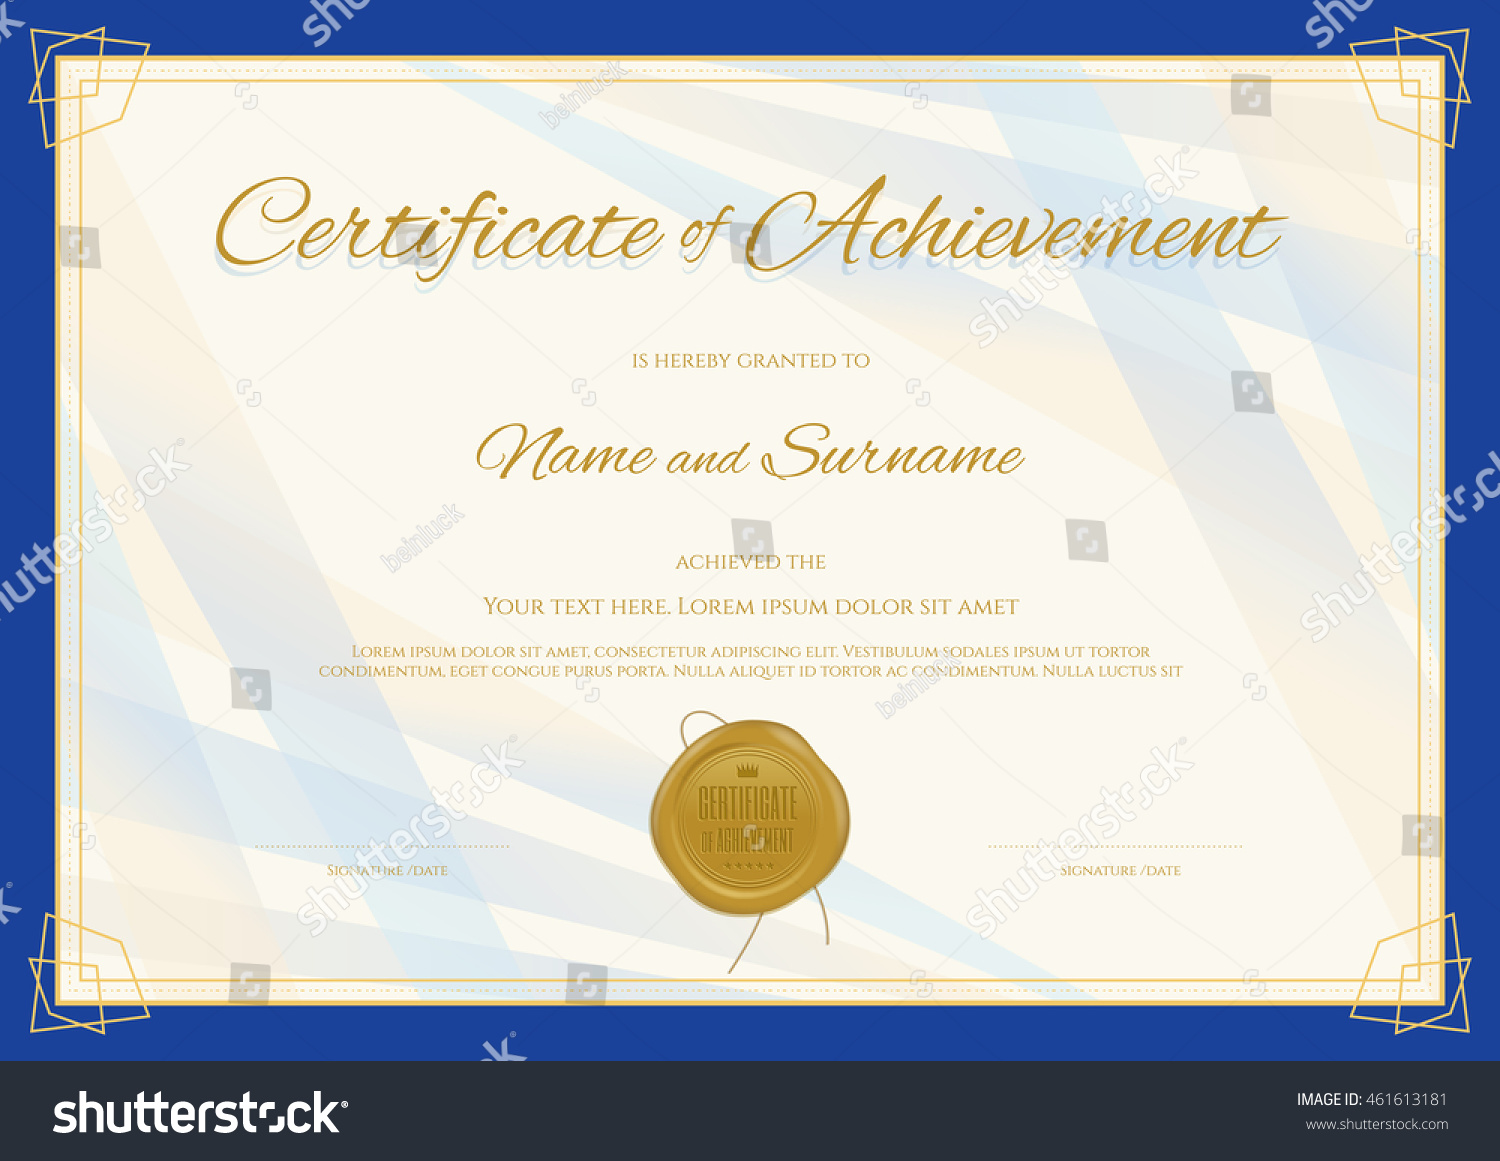 Certificate Of Achievement Template In Modern Theme With Blue Border  Certificate Achievement Template